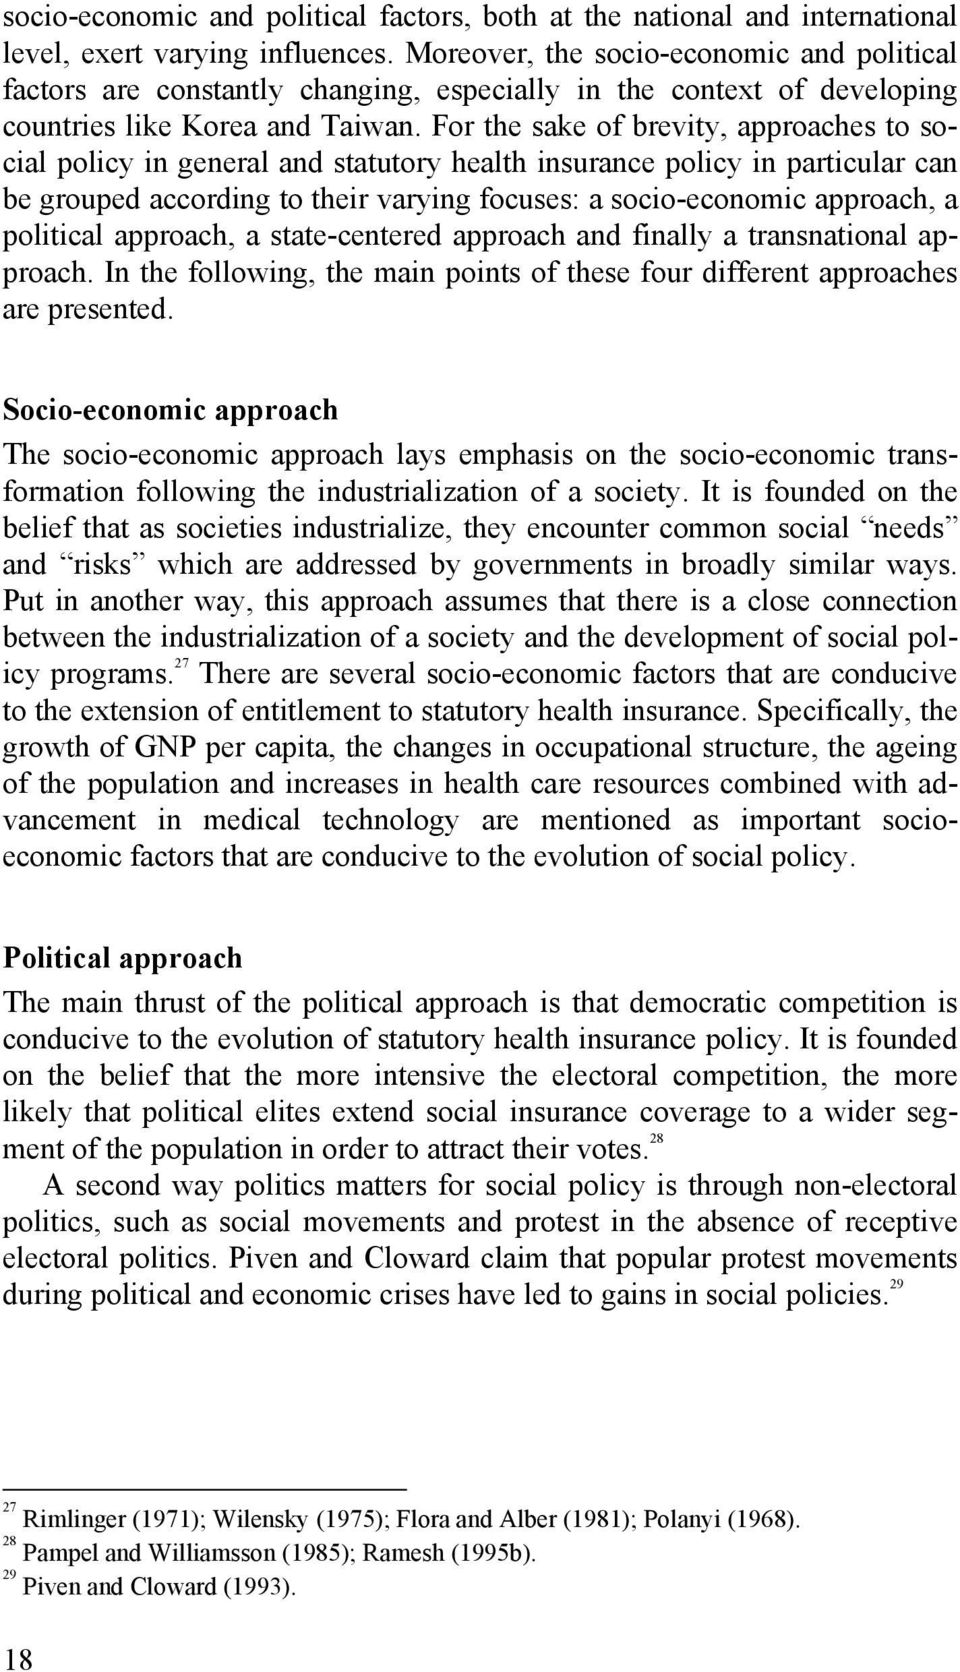 For the sake of brevity, approaches to social policy in general and statutory health insurance policy in particular can be grouped according to their varying focuses: a socio-economic approach, a